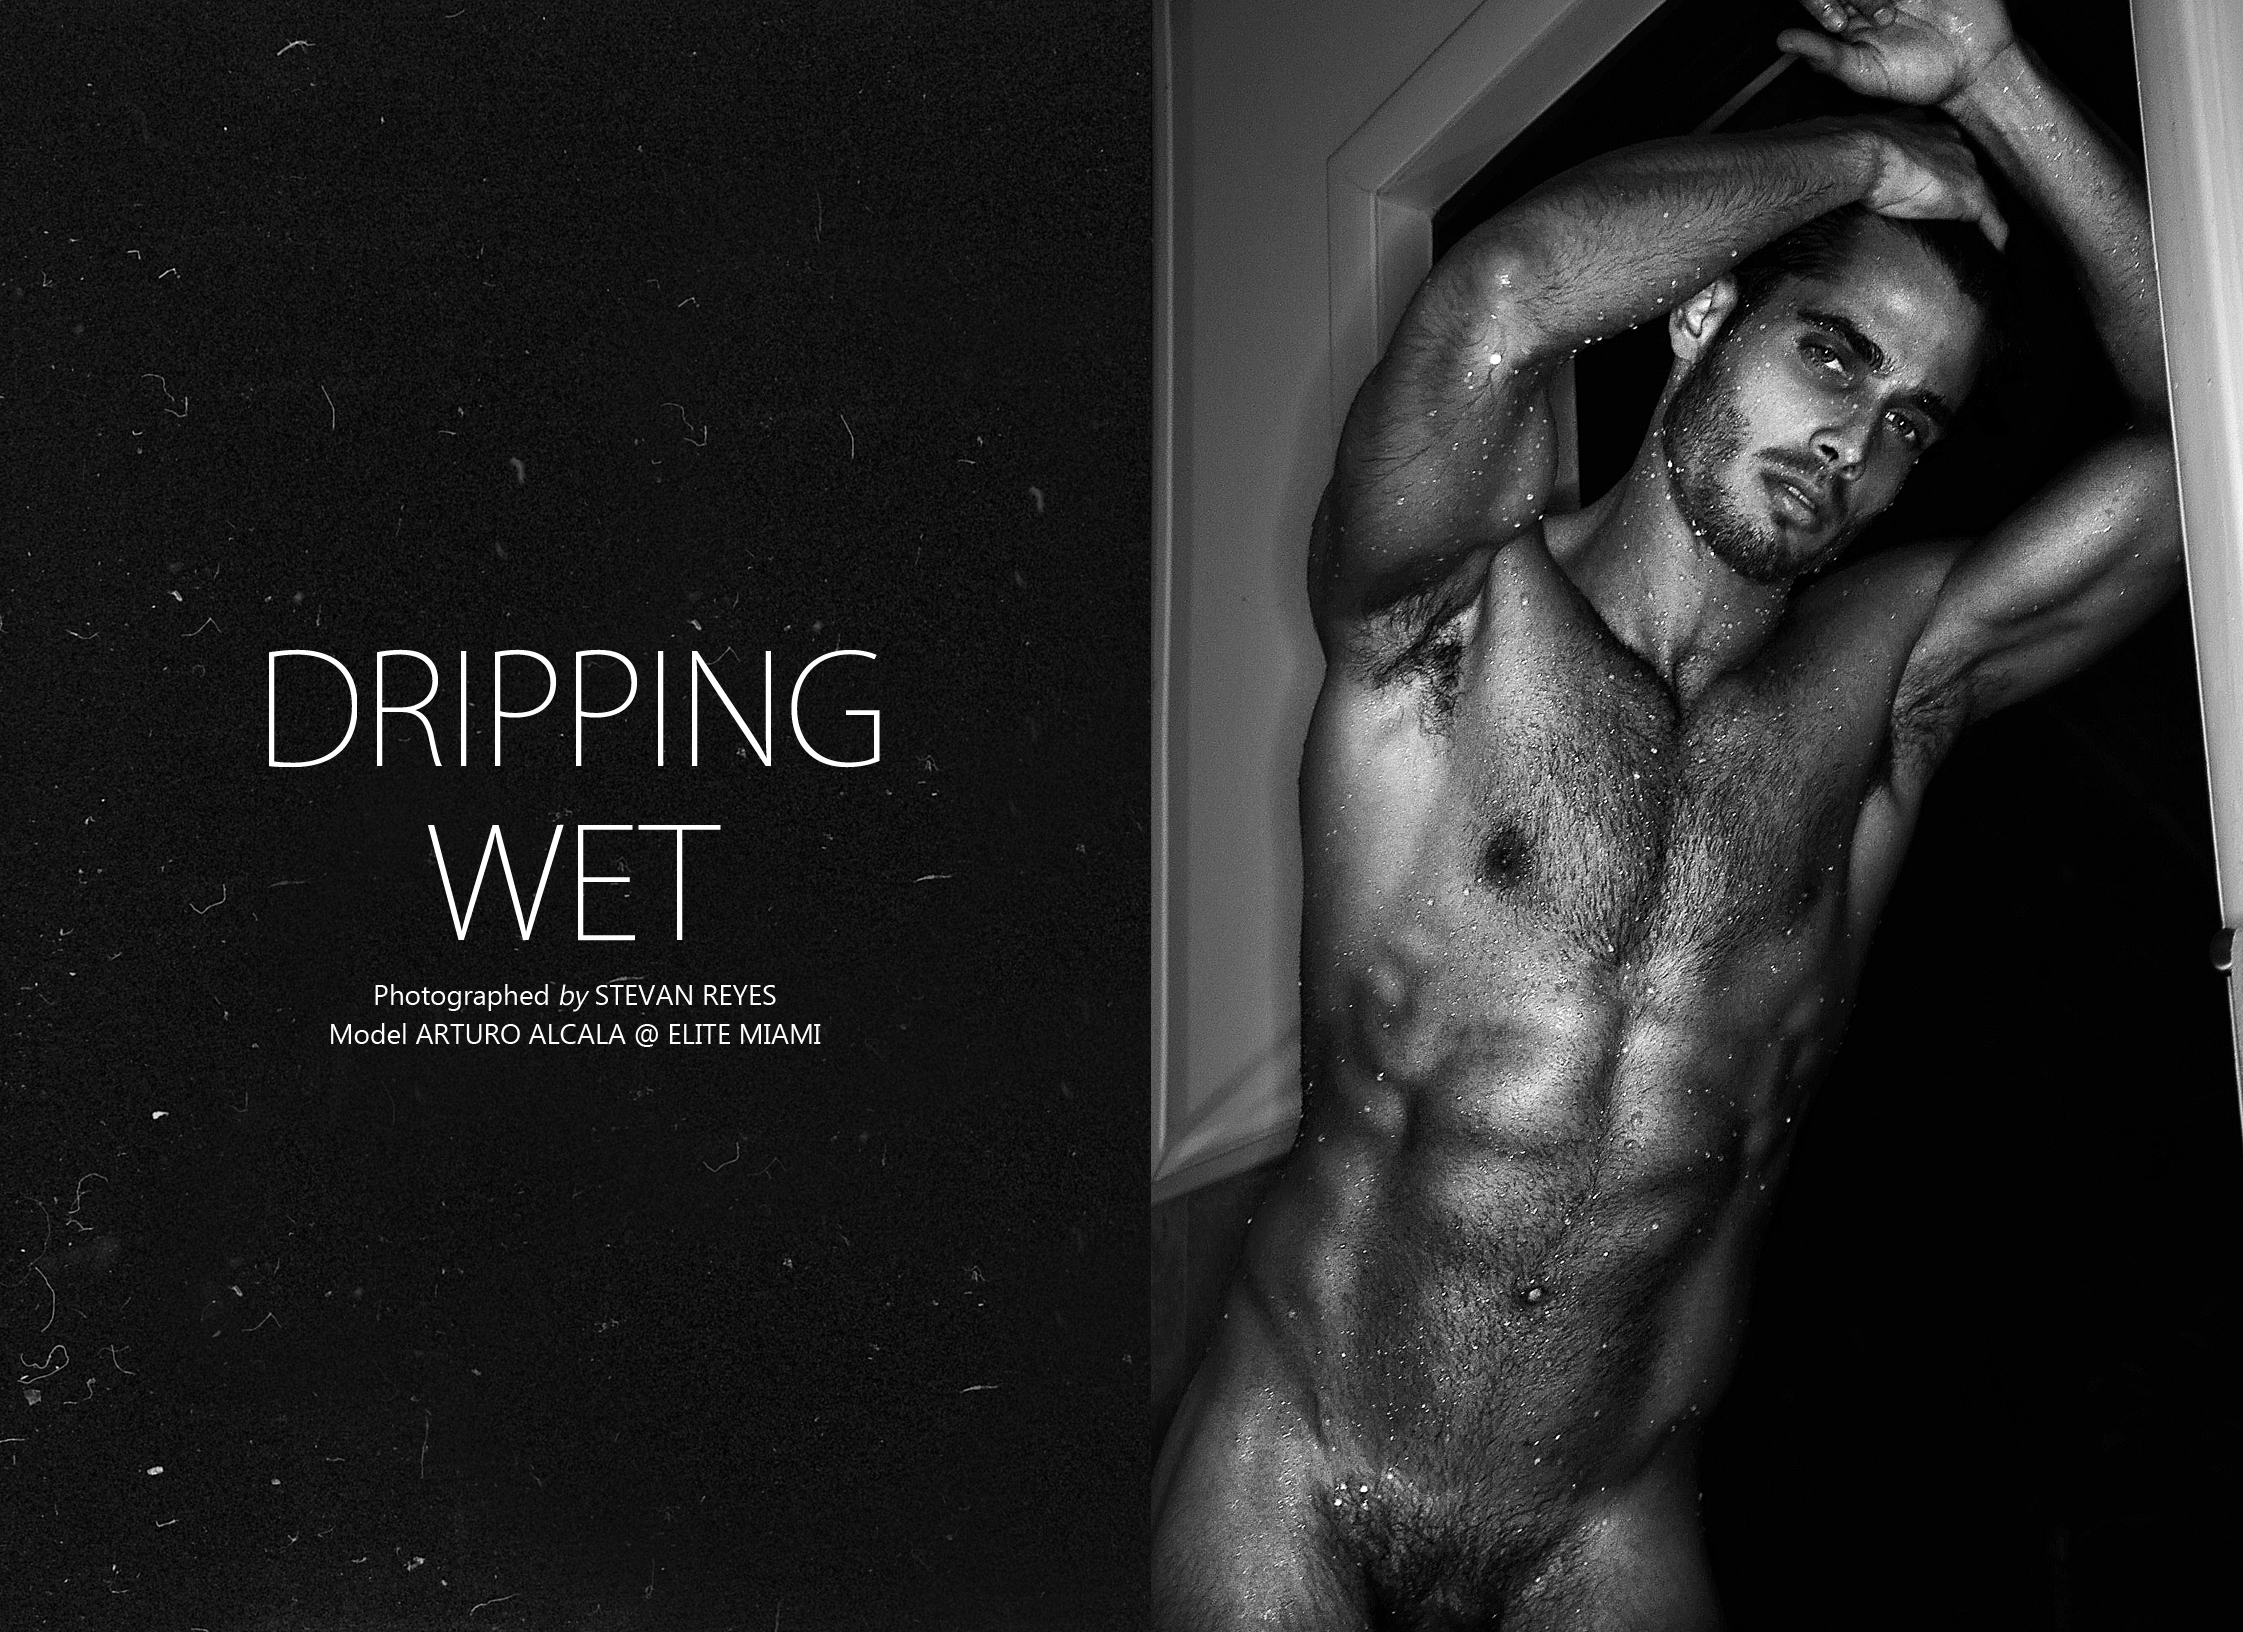 Introducing for the first time, Elite Miami model Arturo Alcala stars in a racy hot bath story lensed by photographer Stevan Reyes. The candid model possess a beautiful toned body wish is important to stars hot images like this. Stevan Reyes exposed his work for the first here in our webzine, we hope he can keep up the good work. In an Exclusive for Fashionably Male we wish you a very Happy Hump Day.